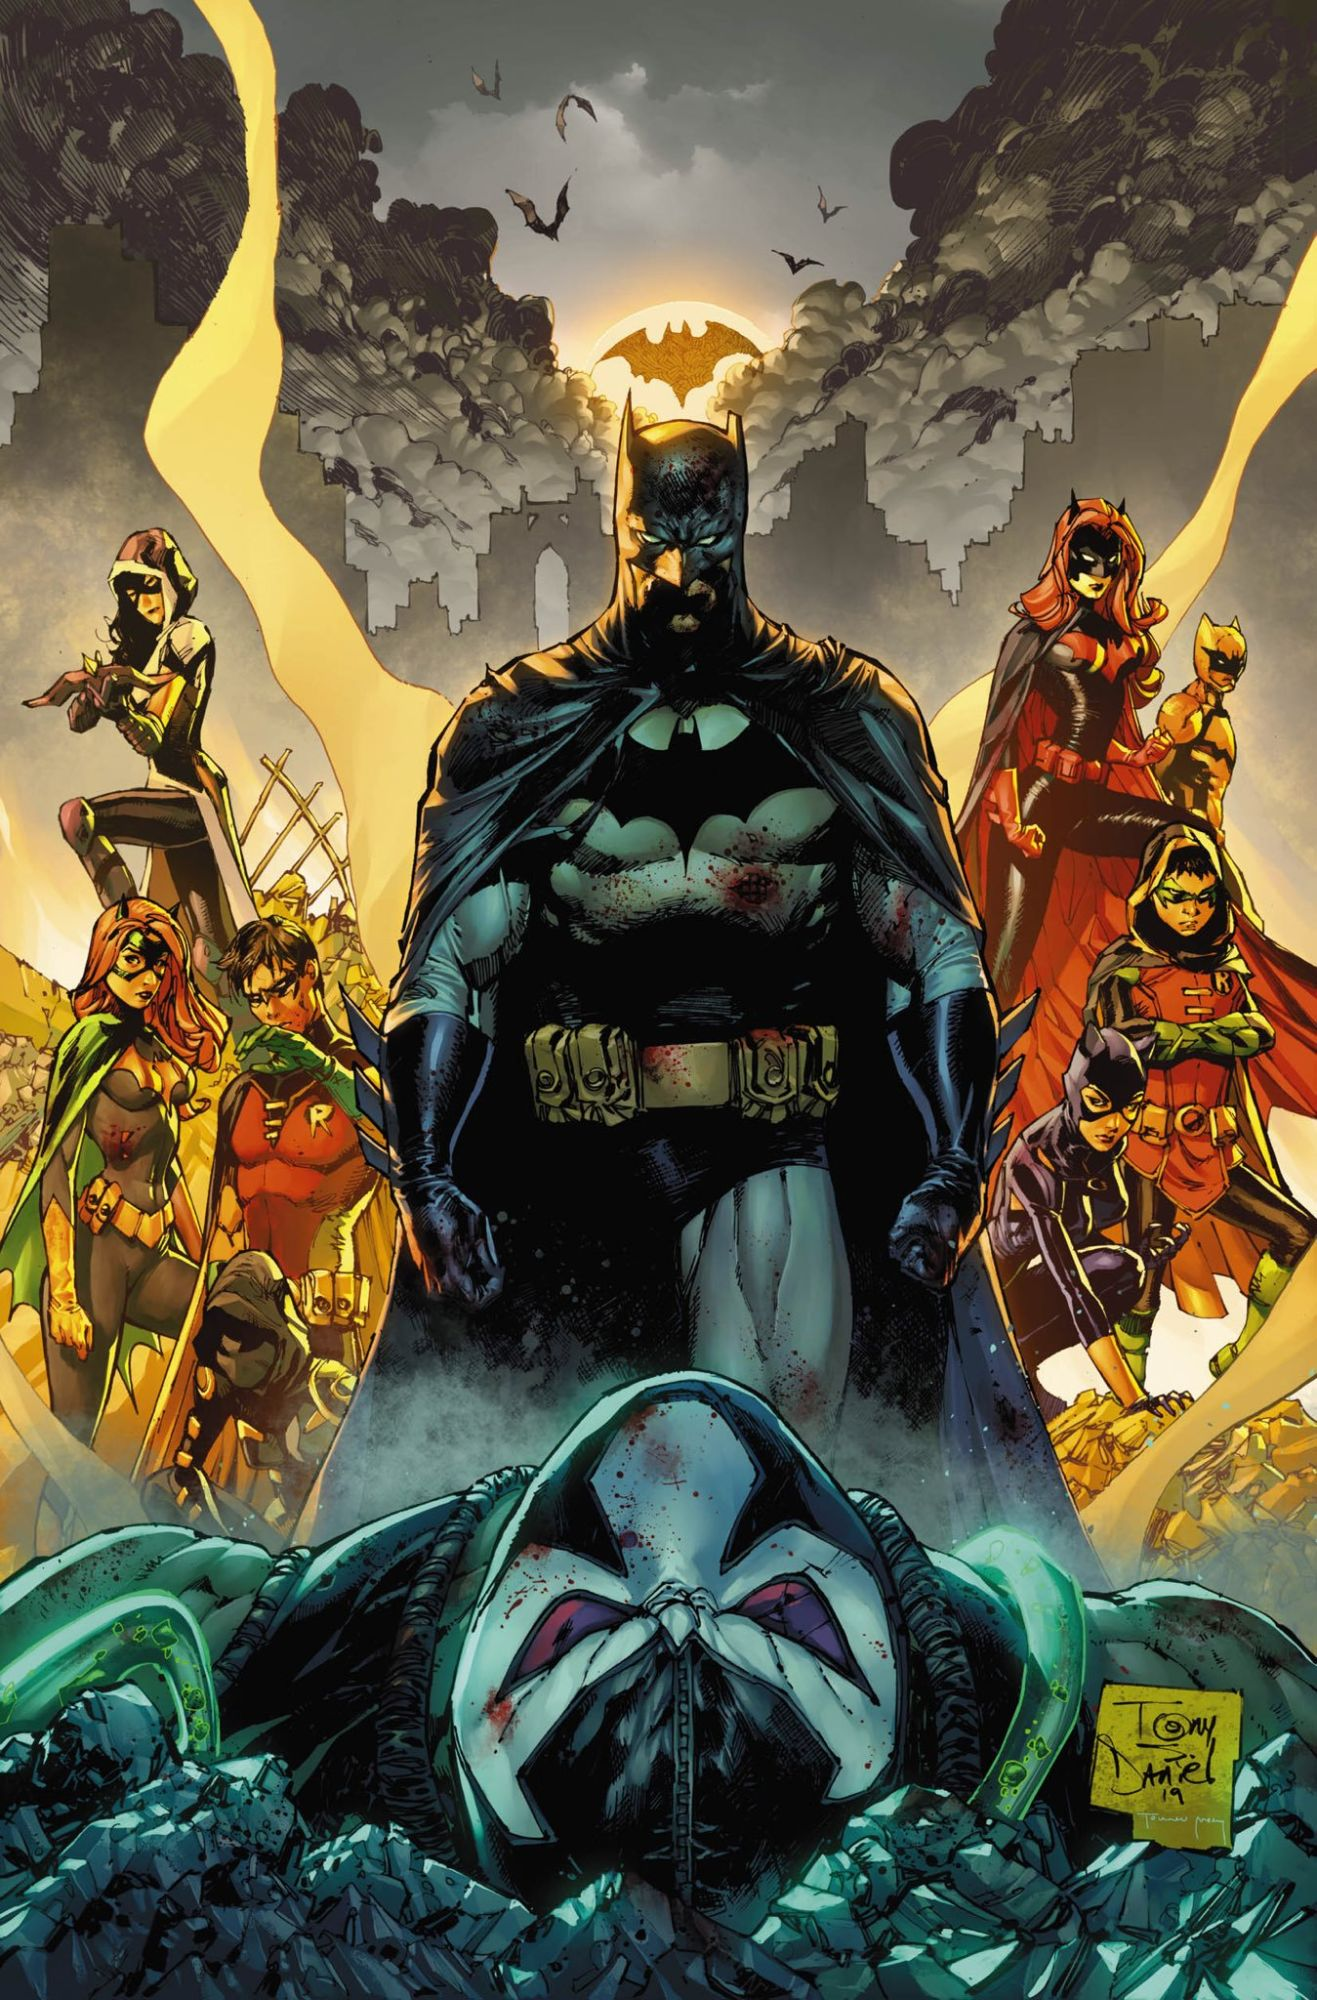 OFFICIAL: Tony Daniel, Danny Miki and Tomeu Morey as New Batman Ongoing Artists in 2020